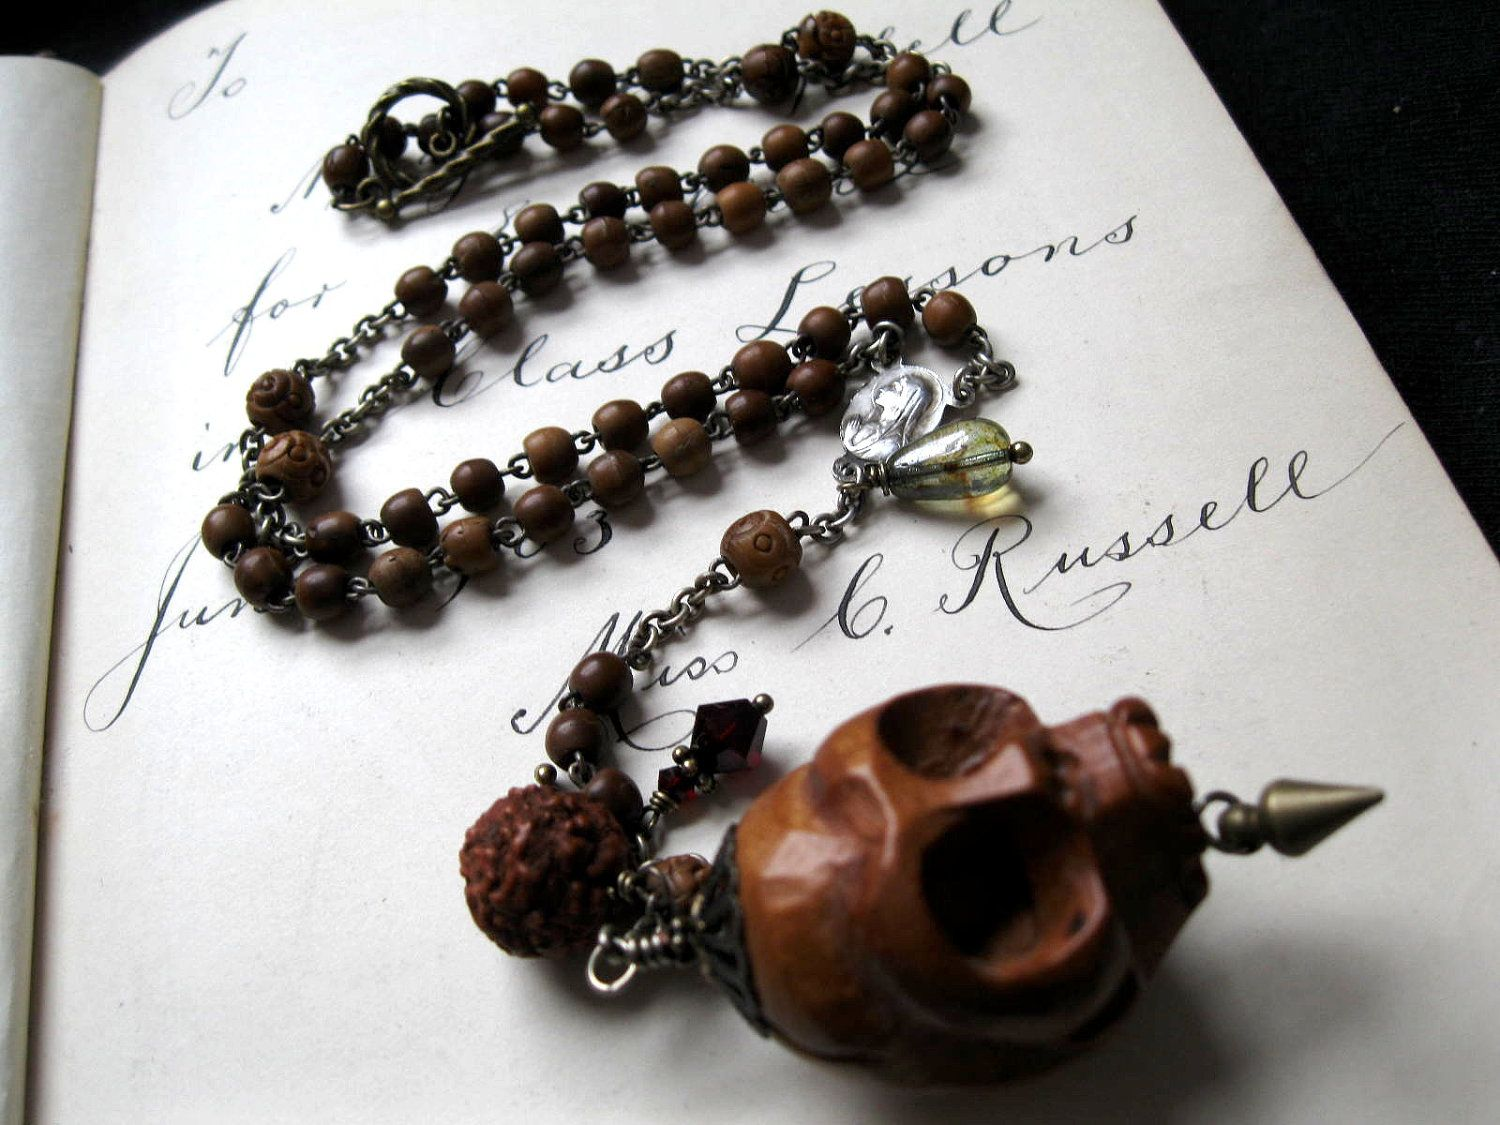 Details about q101207 amazing 102 quot coral amp onyx necklace - Momento Mori Carved Wooden Skull Vintage Rosary Necklace With Rudraksha Bead And Glass Tear